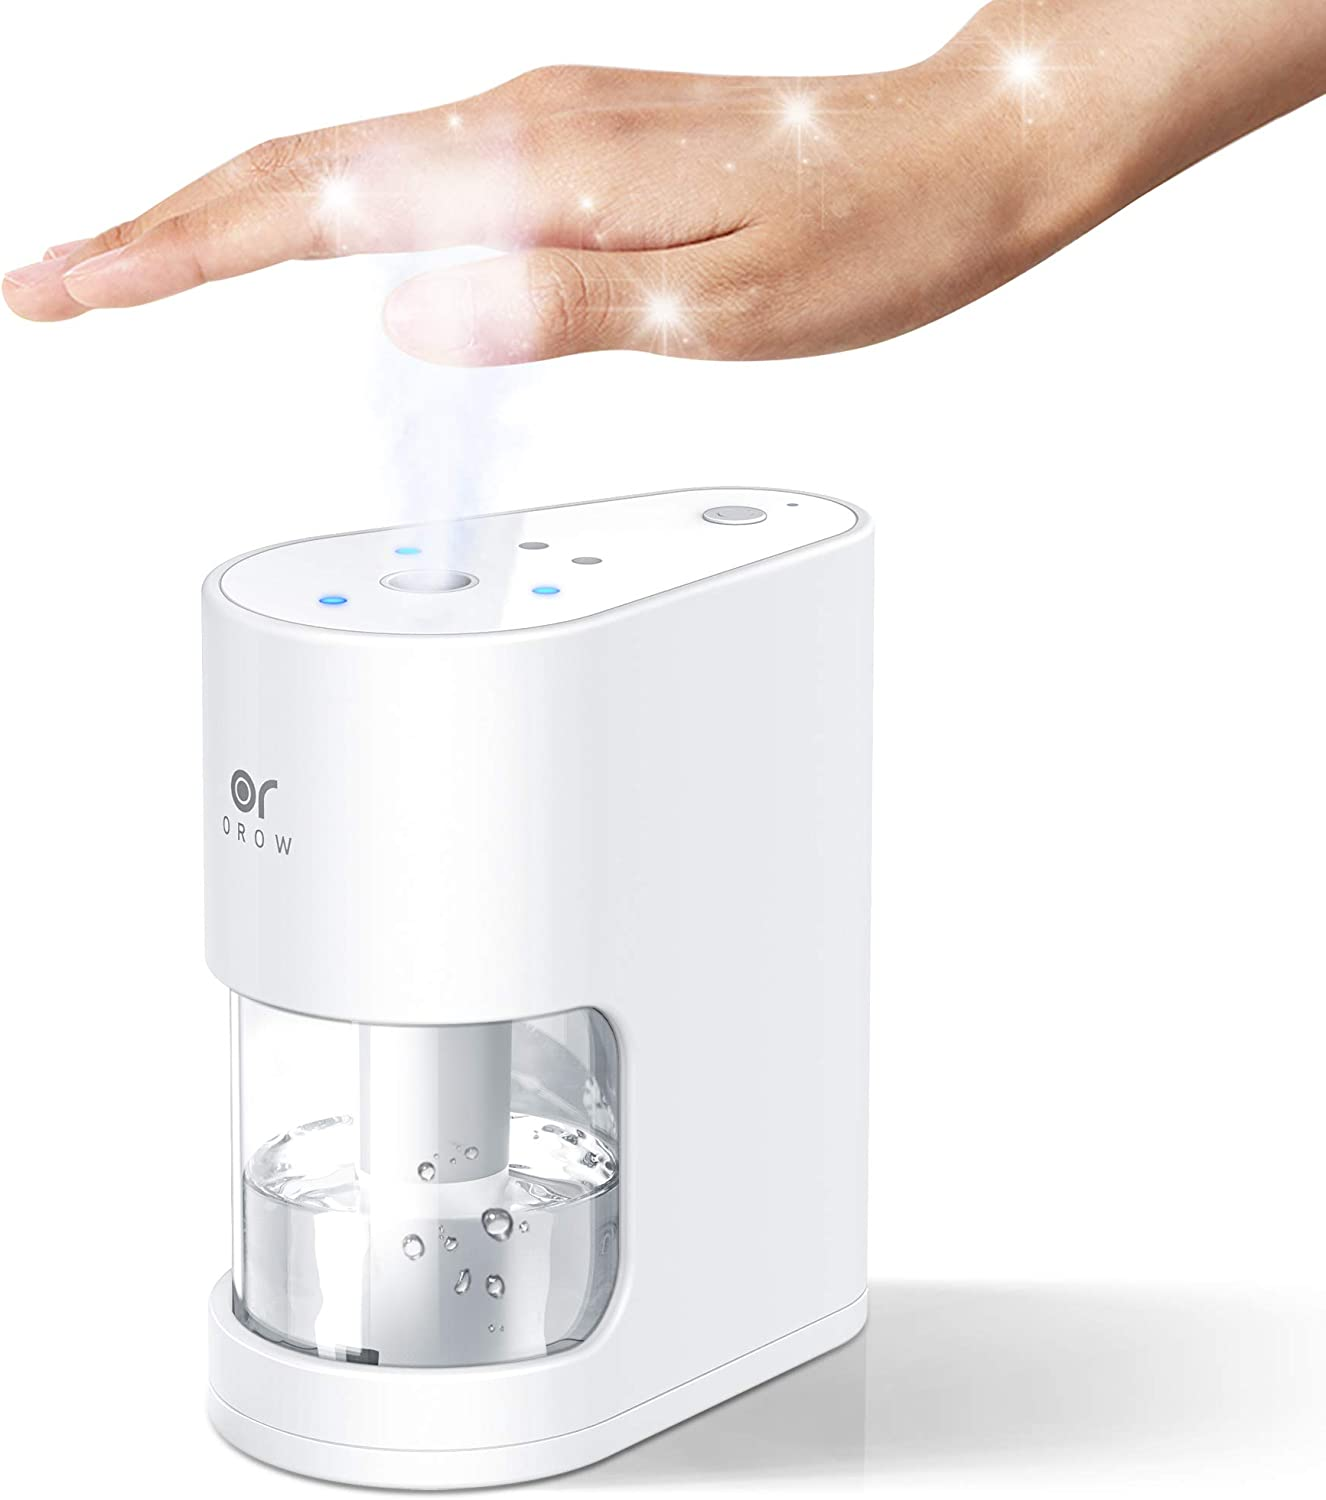 OROROW Automatic Alcohol Dispenser 100ML Touchless Alcohol Dispenser Sprayer with Sensor for Home, Office, School, Hospital,Bar,Hotel